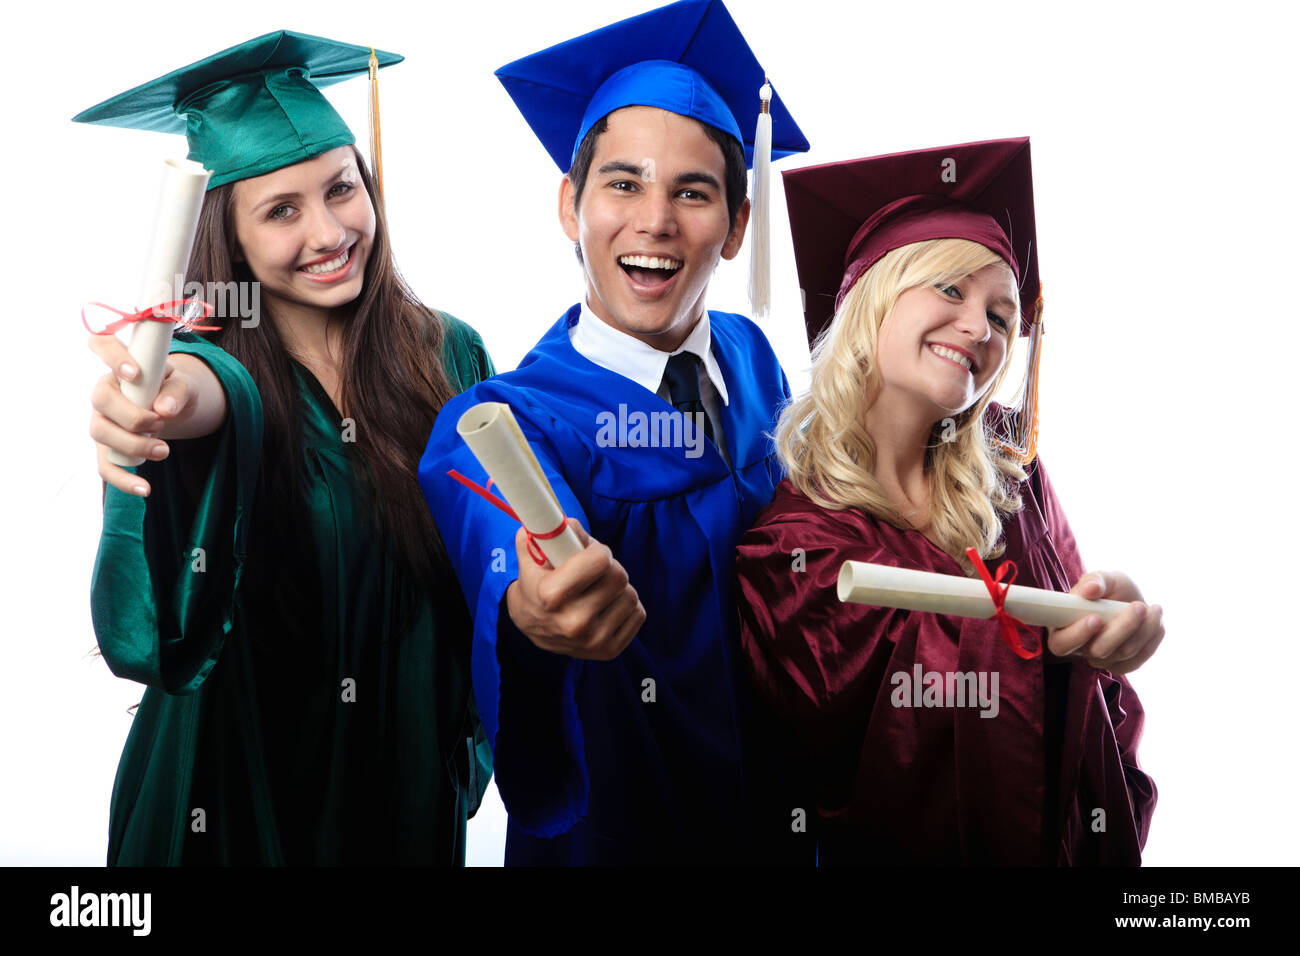 Green Cap And Gown Graduation Stock Photos & Green Cap And Gown ...